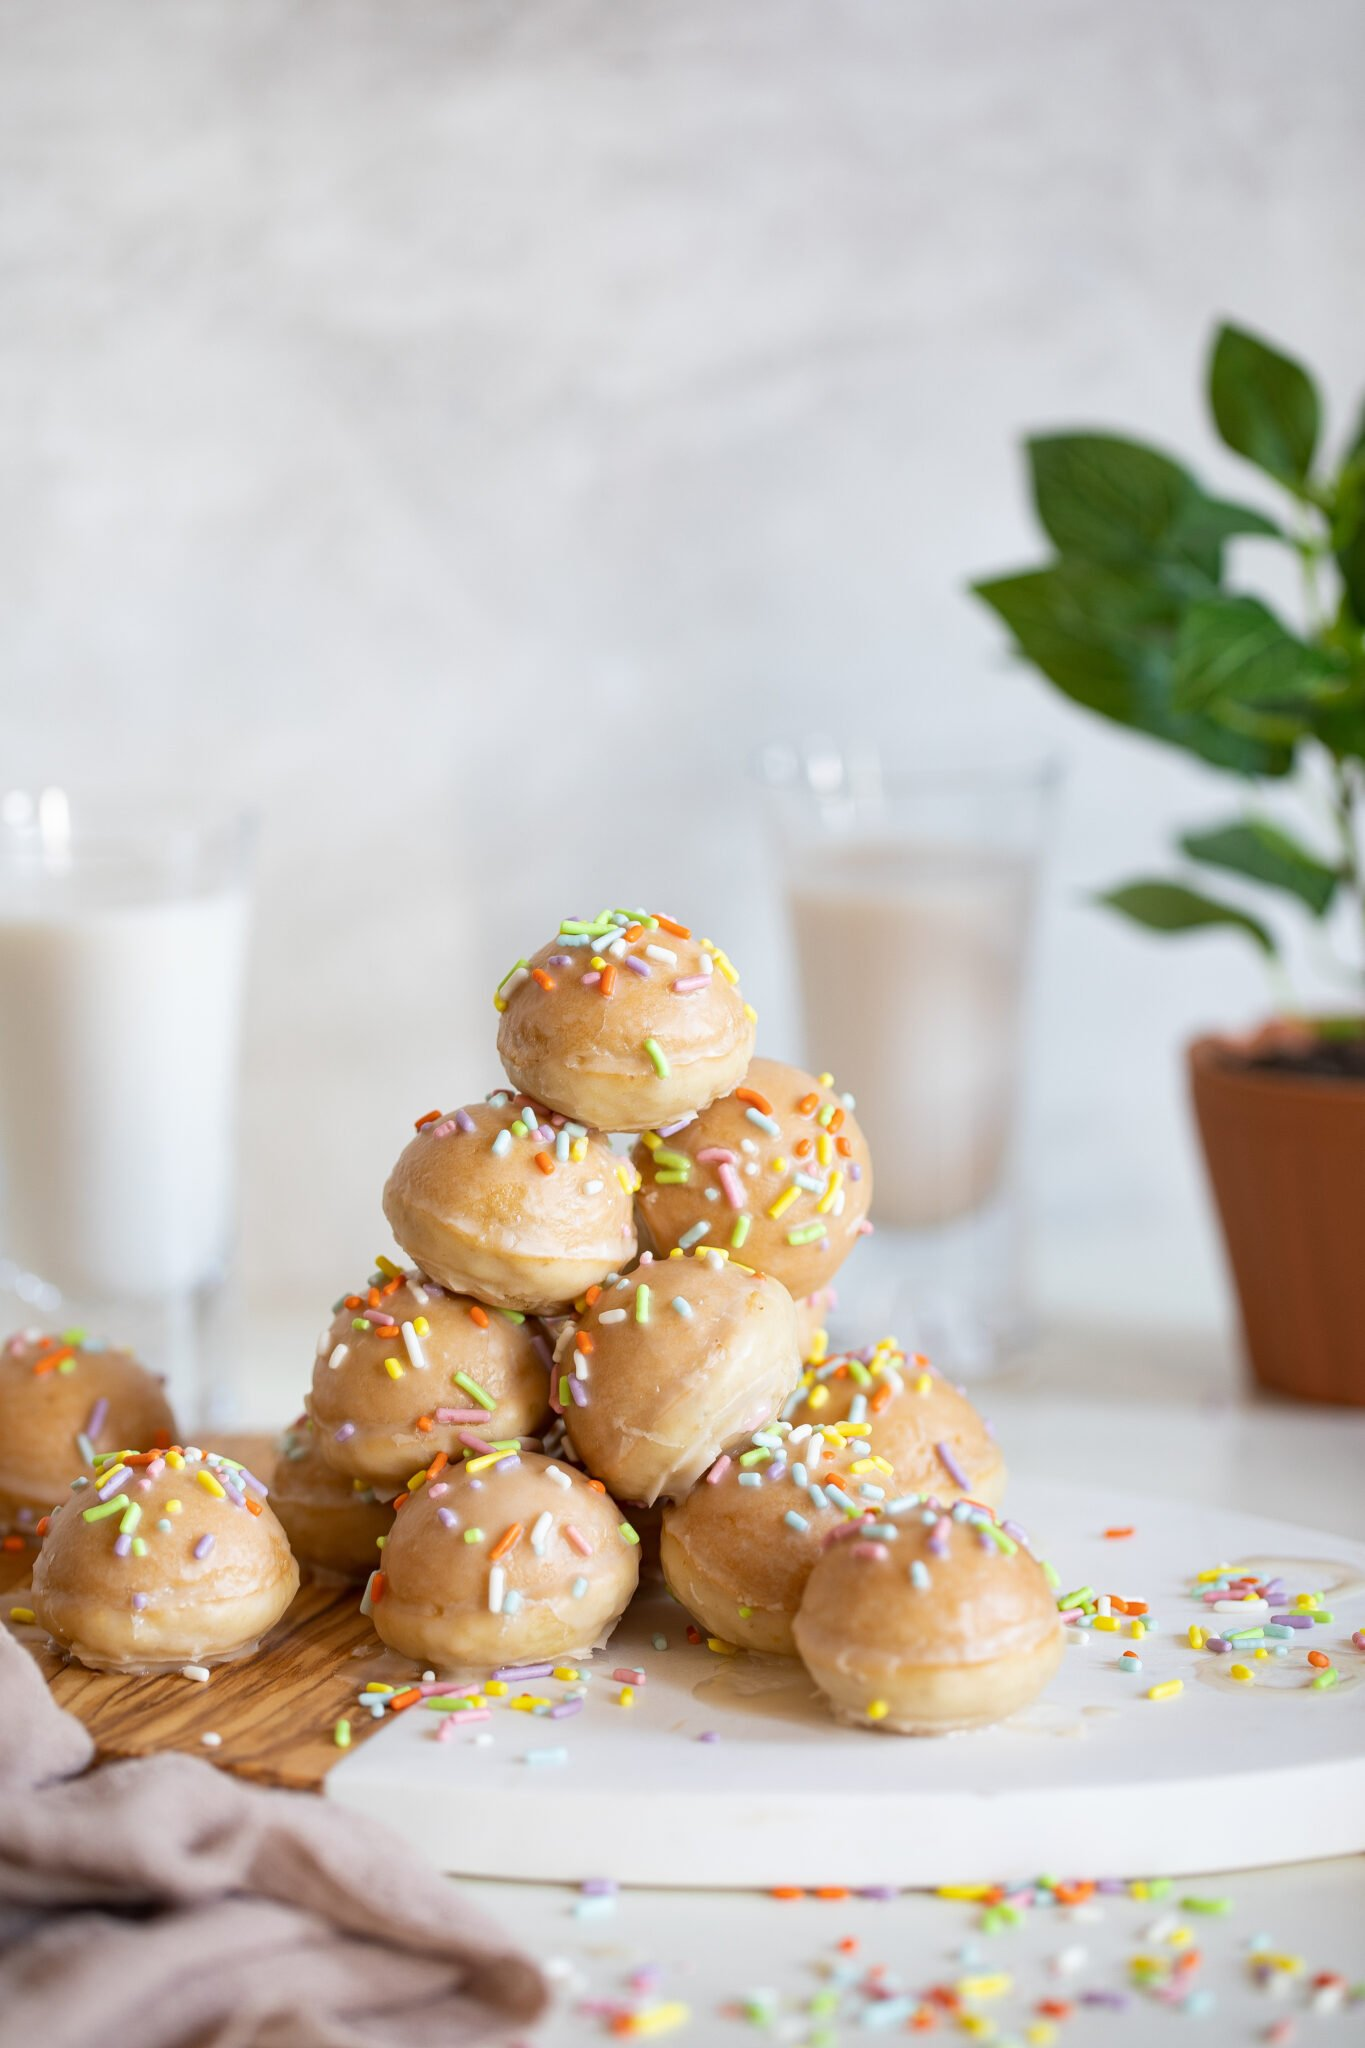 stack of vegan donut holes with sprinkles and vanilla glaze on a cutting board